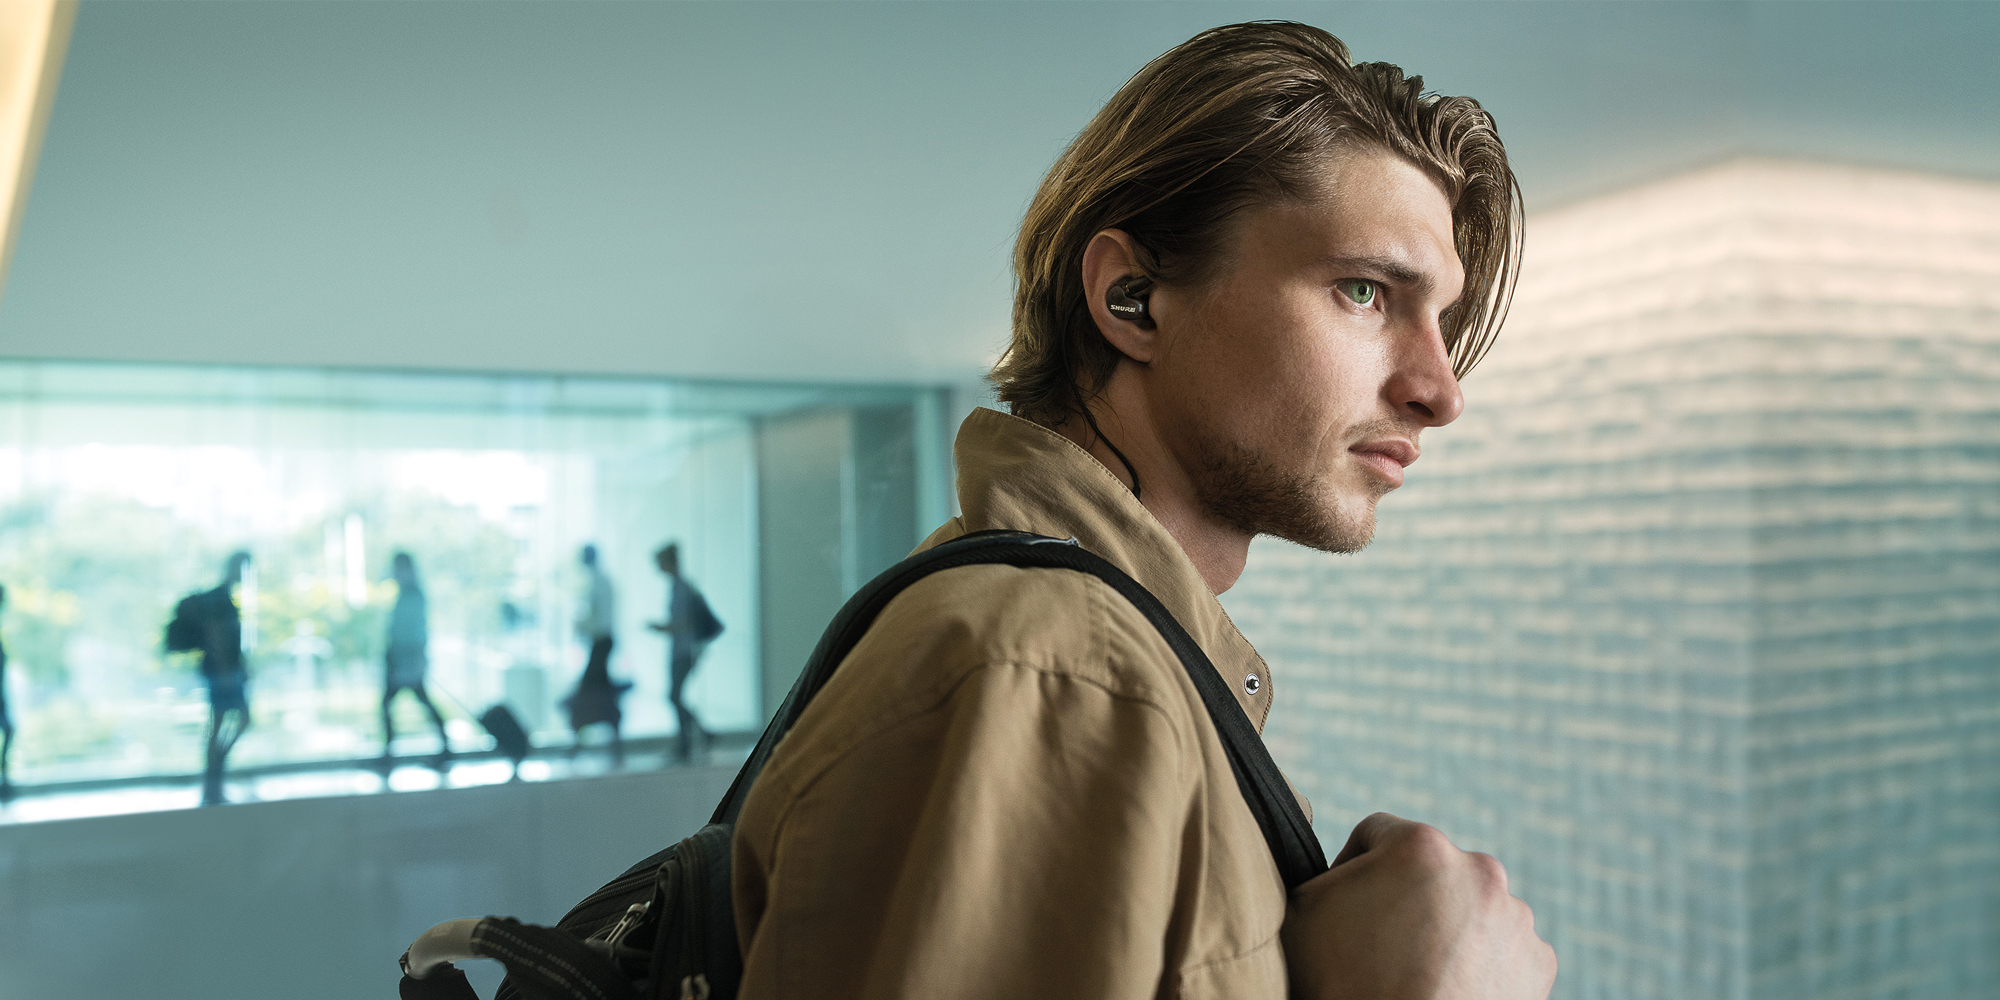 Your Favorite Shure Se Series In Ear Headphones Are Now Wireless